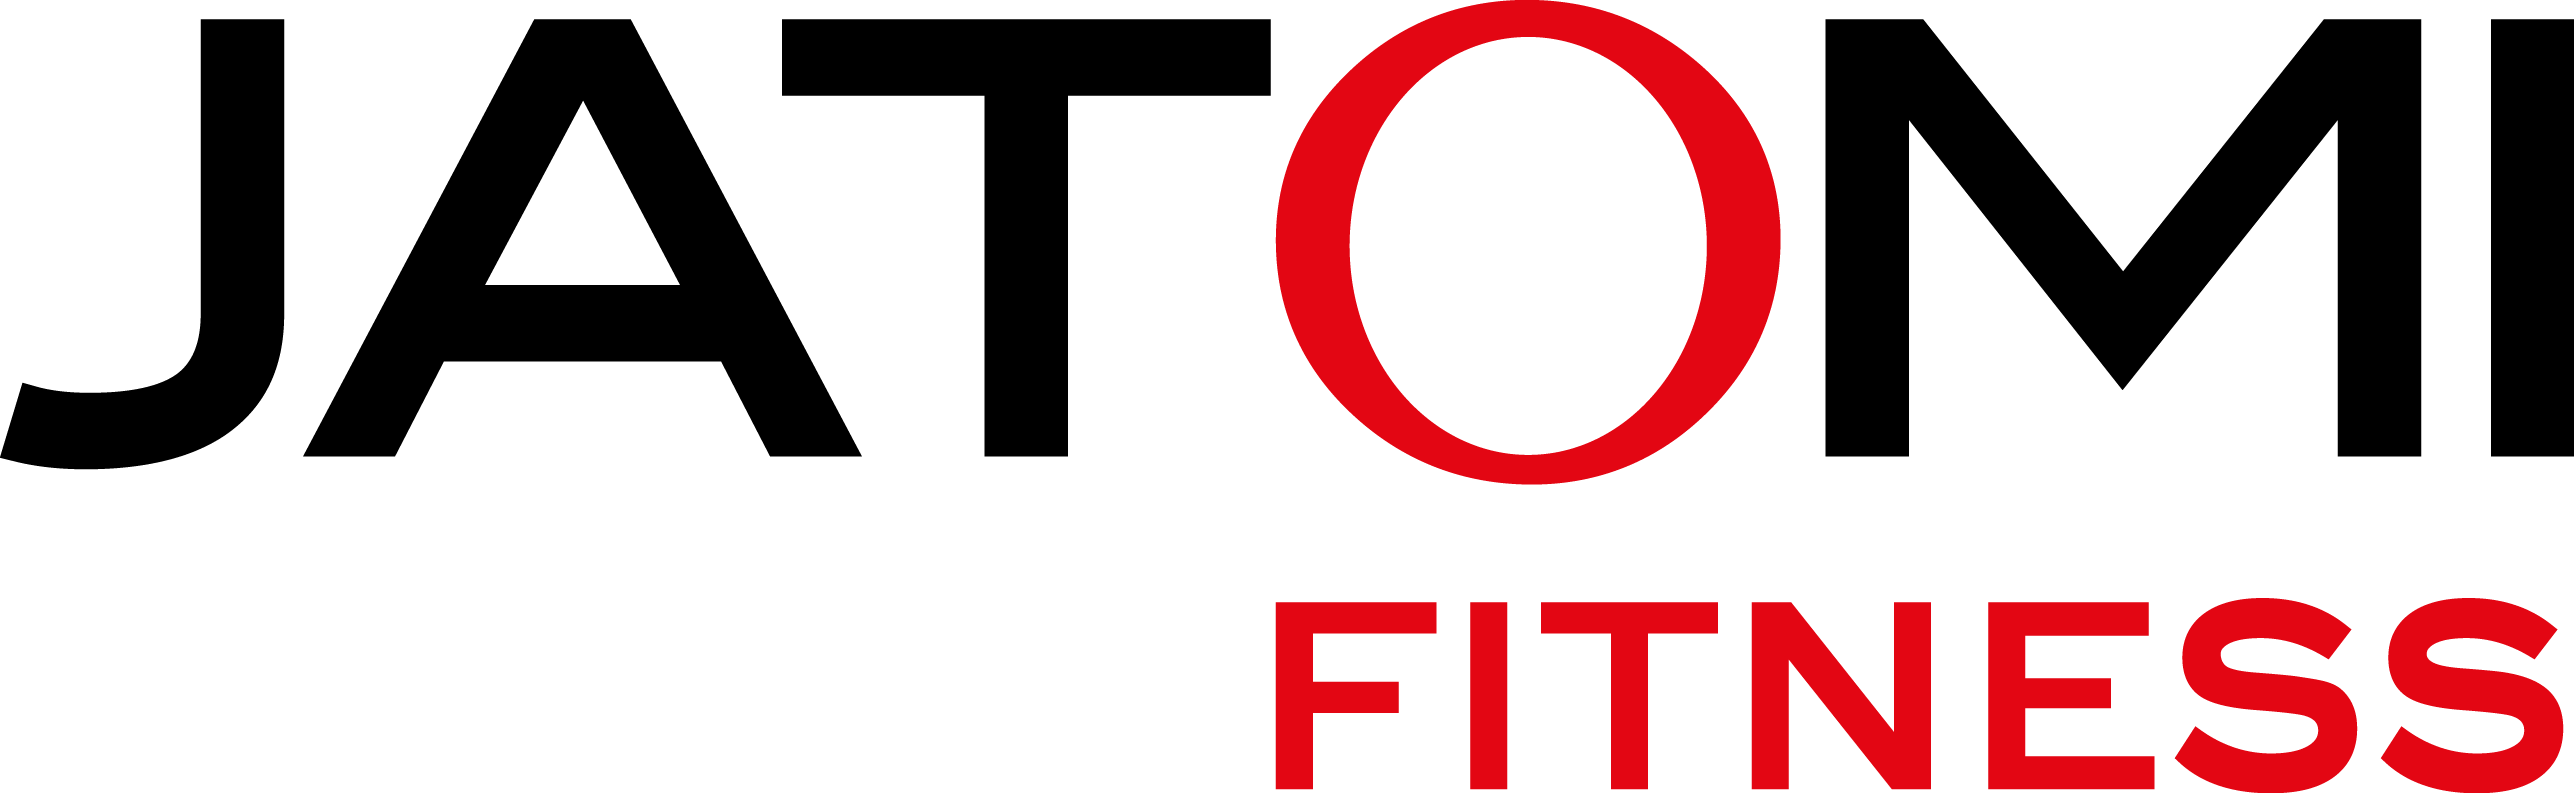 File:Logo jatomi fitness.png - Wikimedia Commons Fitness Logo Png